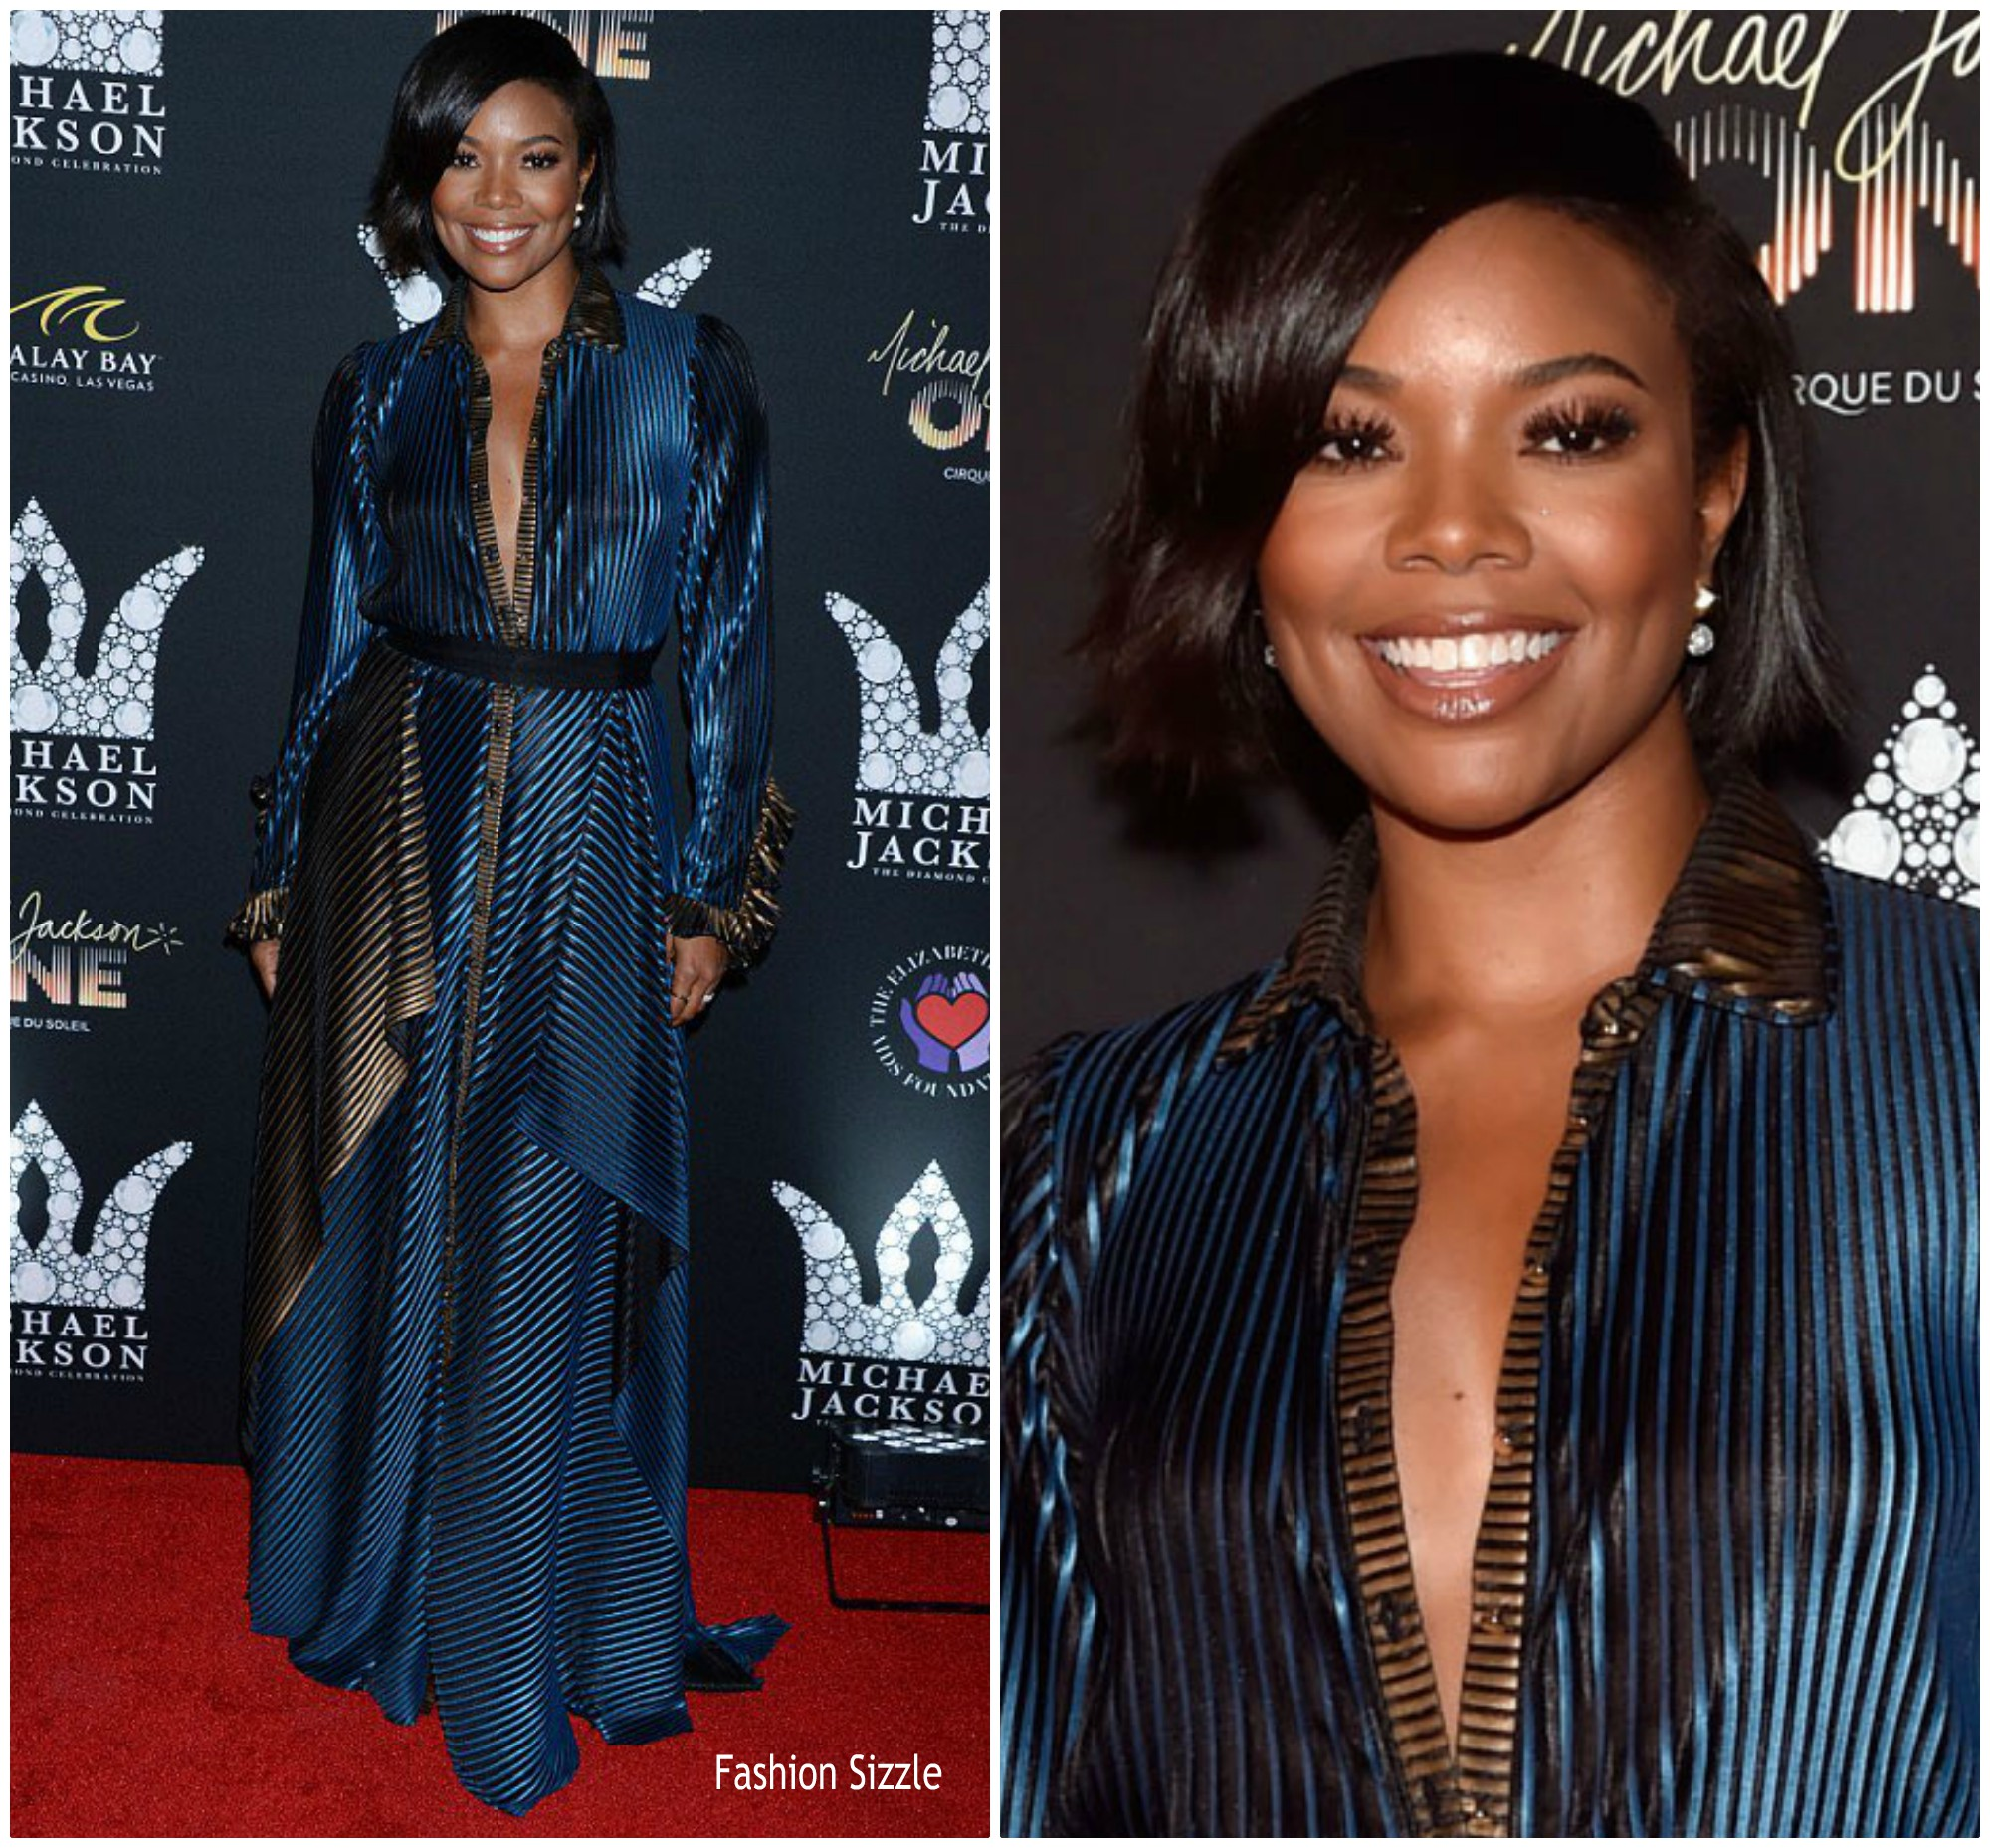 gabrielle-union-in-abodi-michael-jackson-60th-birthday-celebration